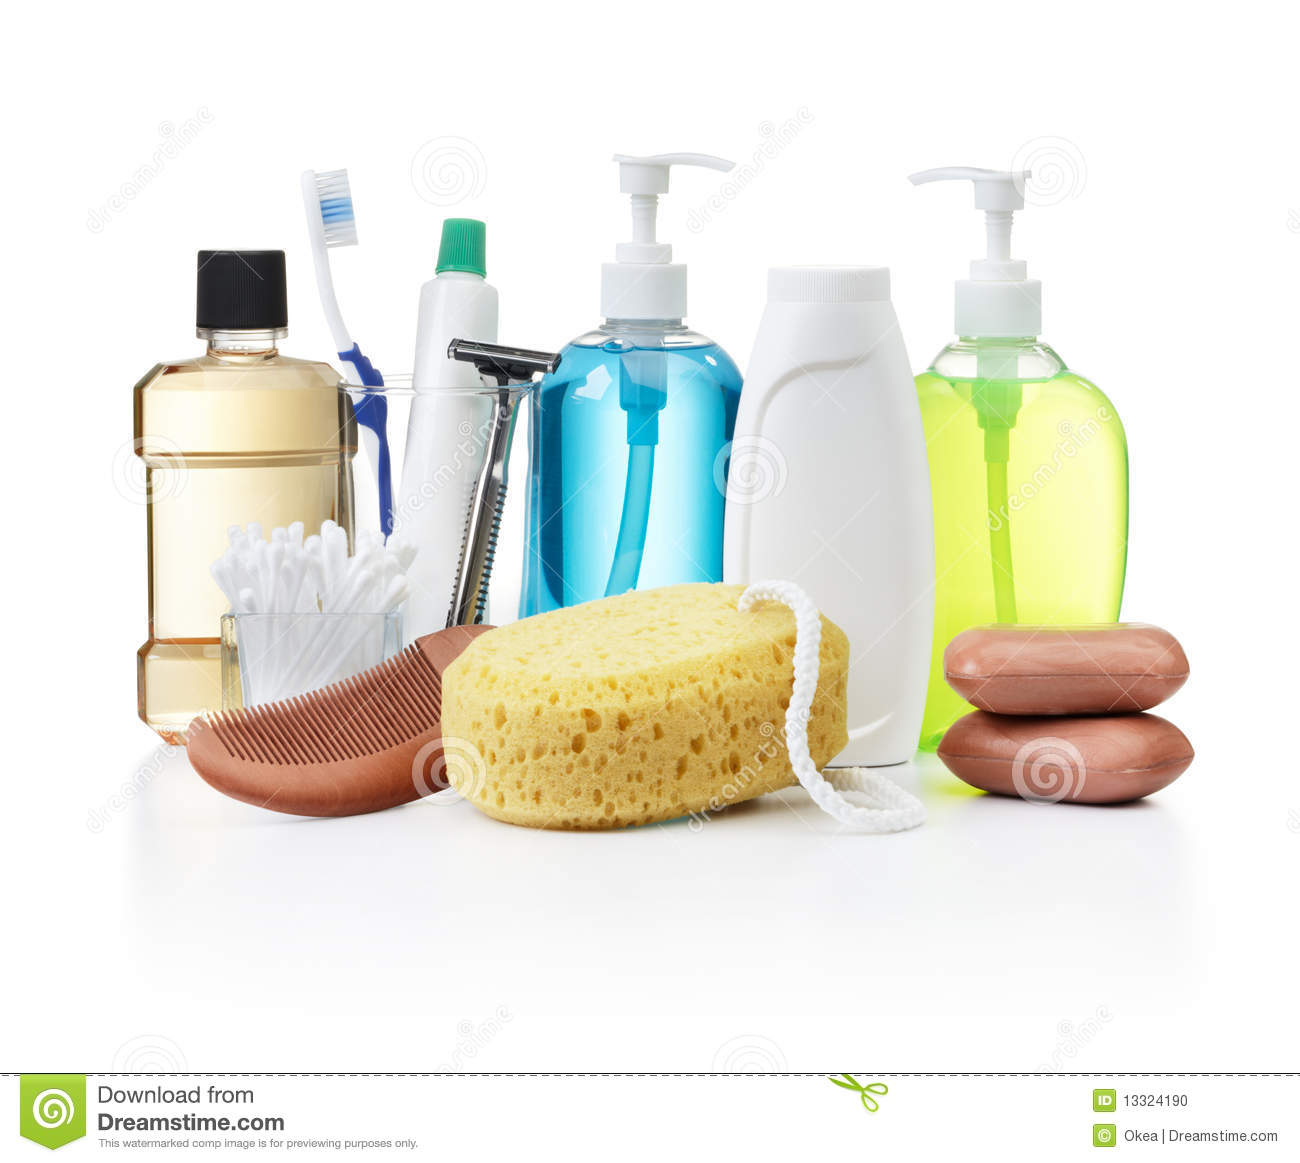 Personal hygiene products stock photo. Image of powder